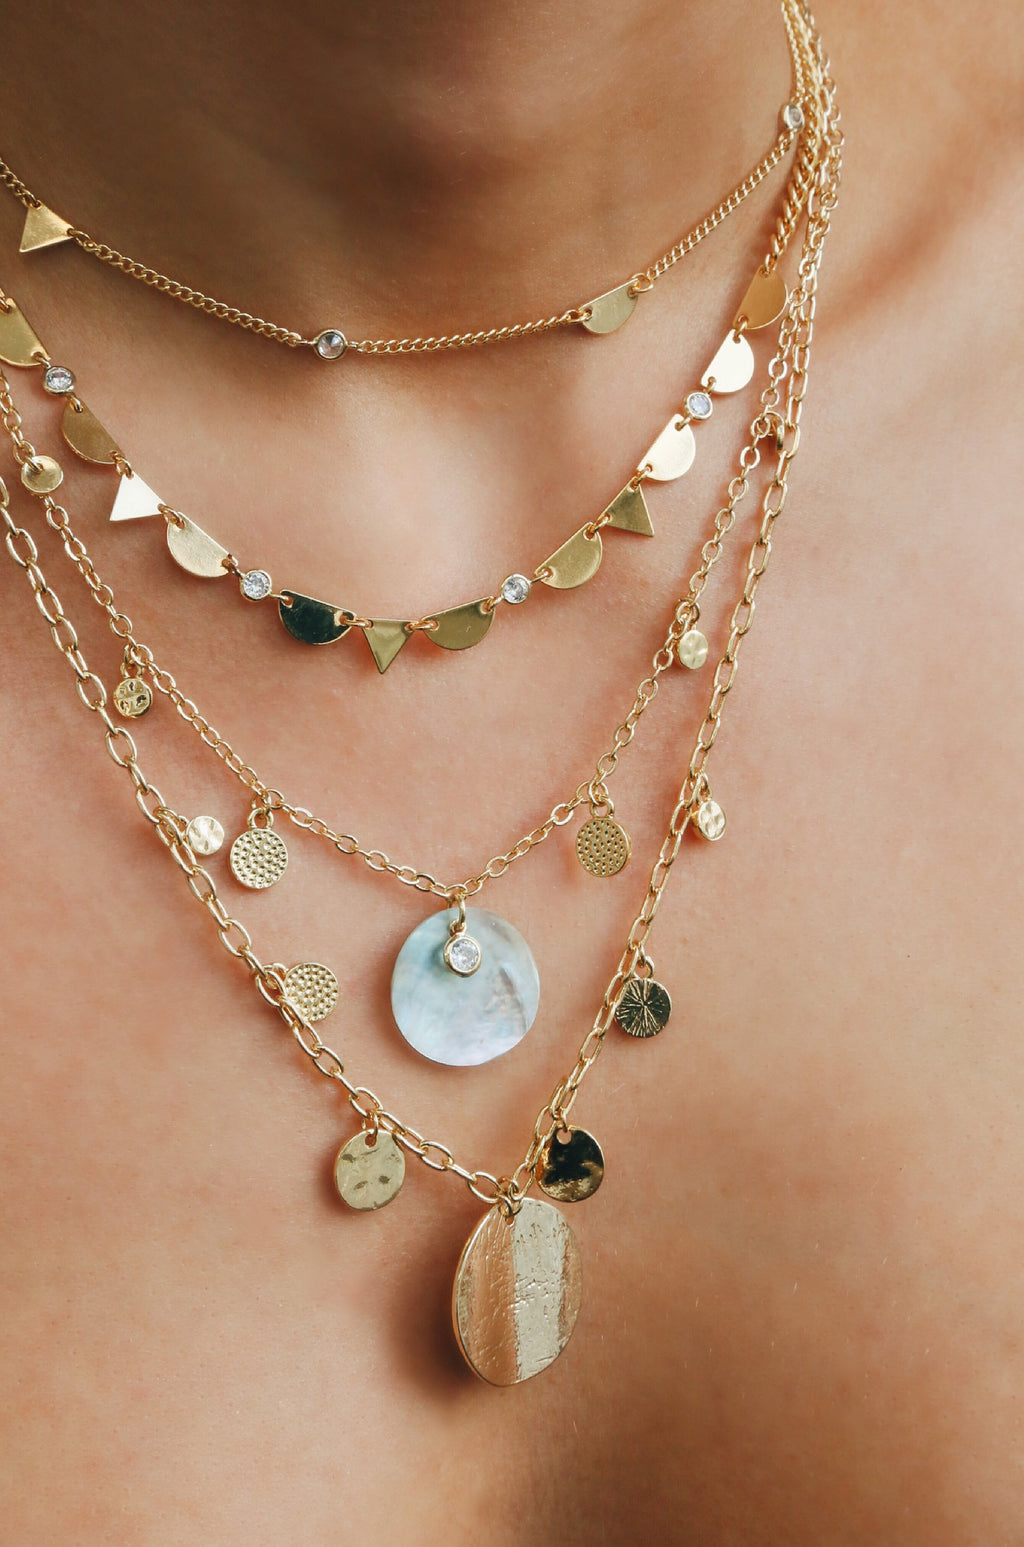 2pc 'Pacific Princess' Shell Necklace Set